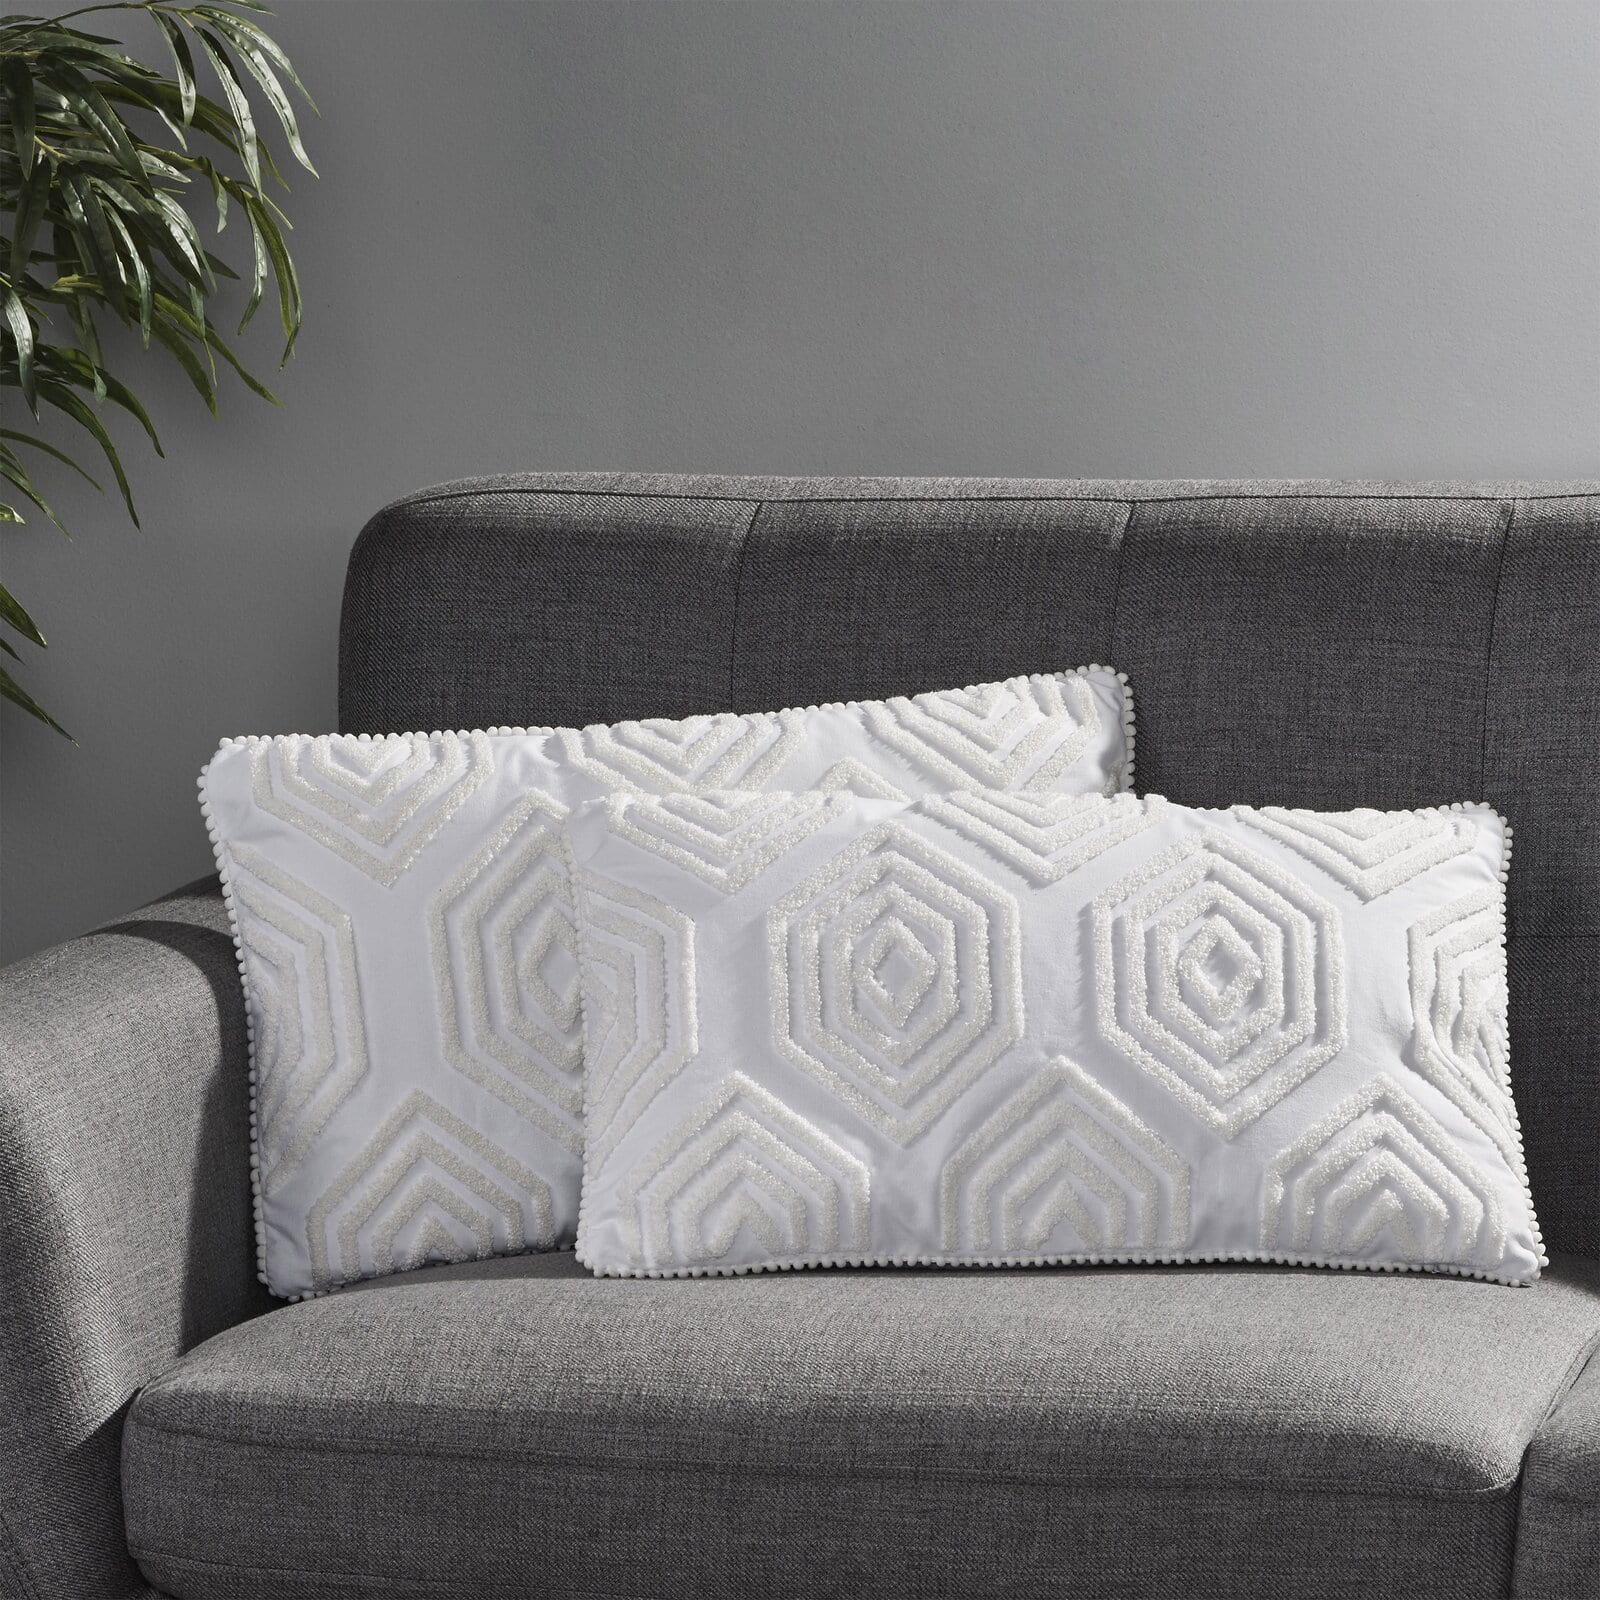 Keep it Simple With White Throw Pillows on a Grey Sofa